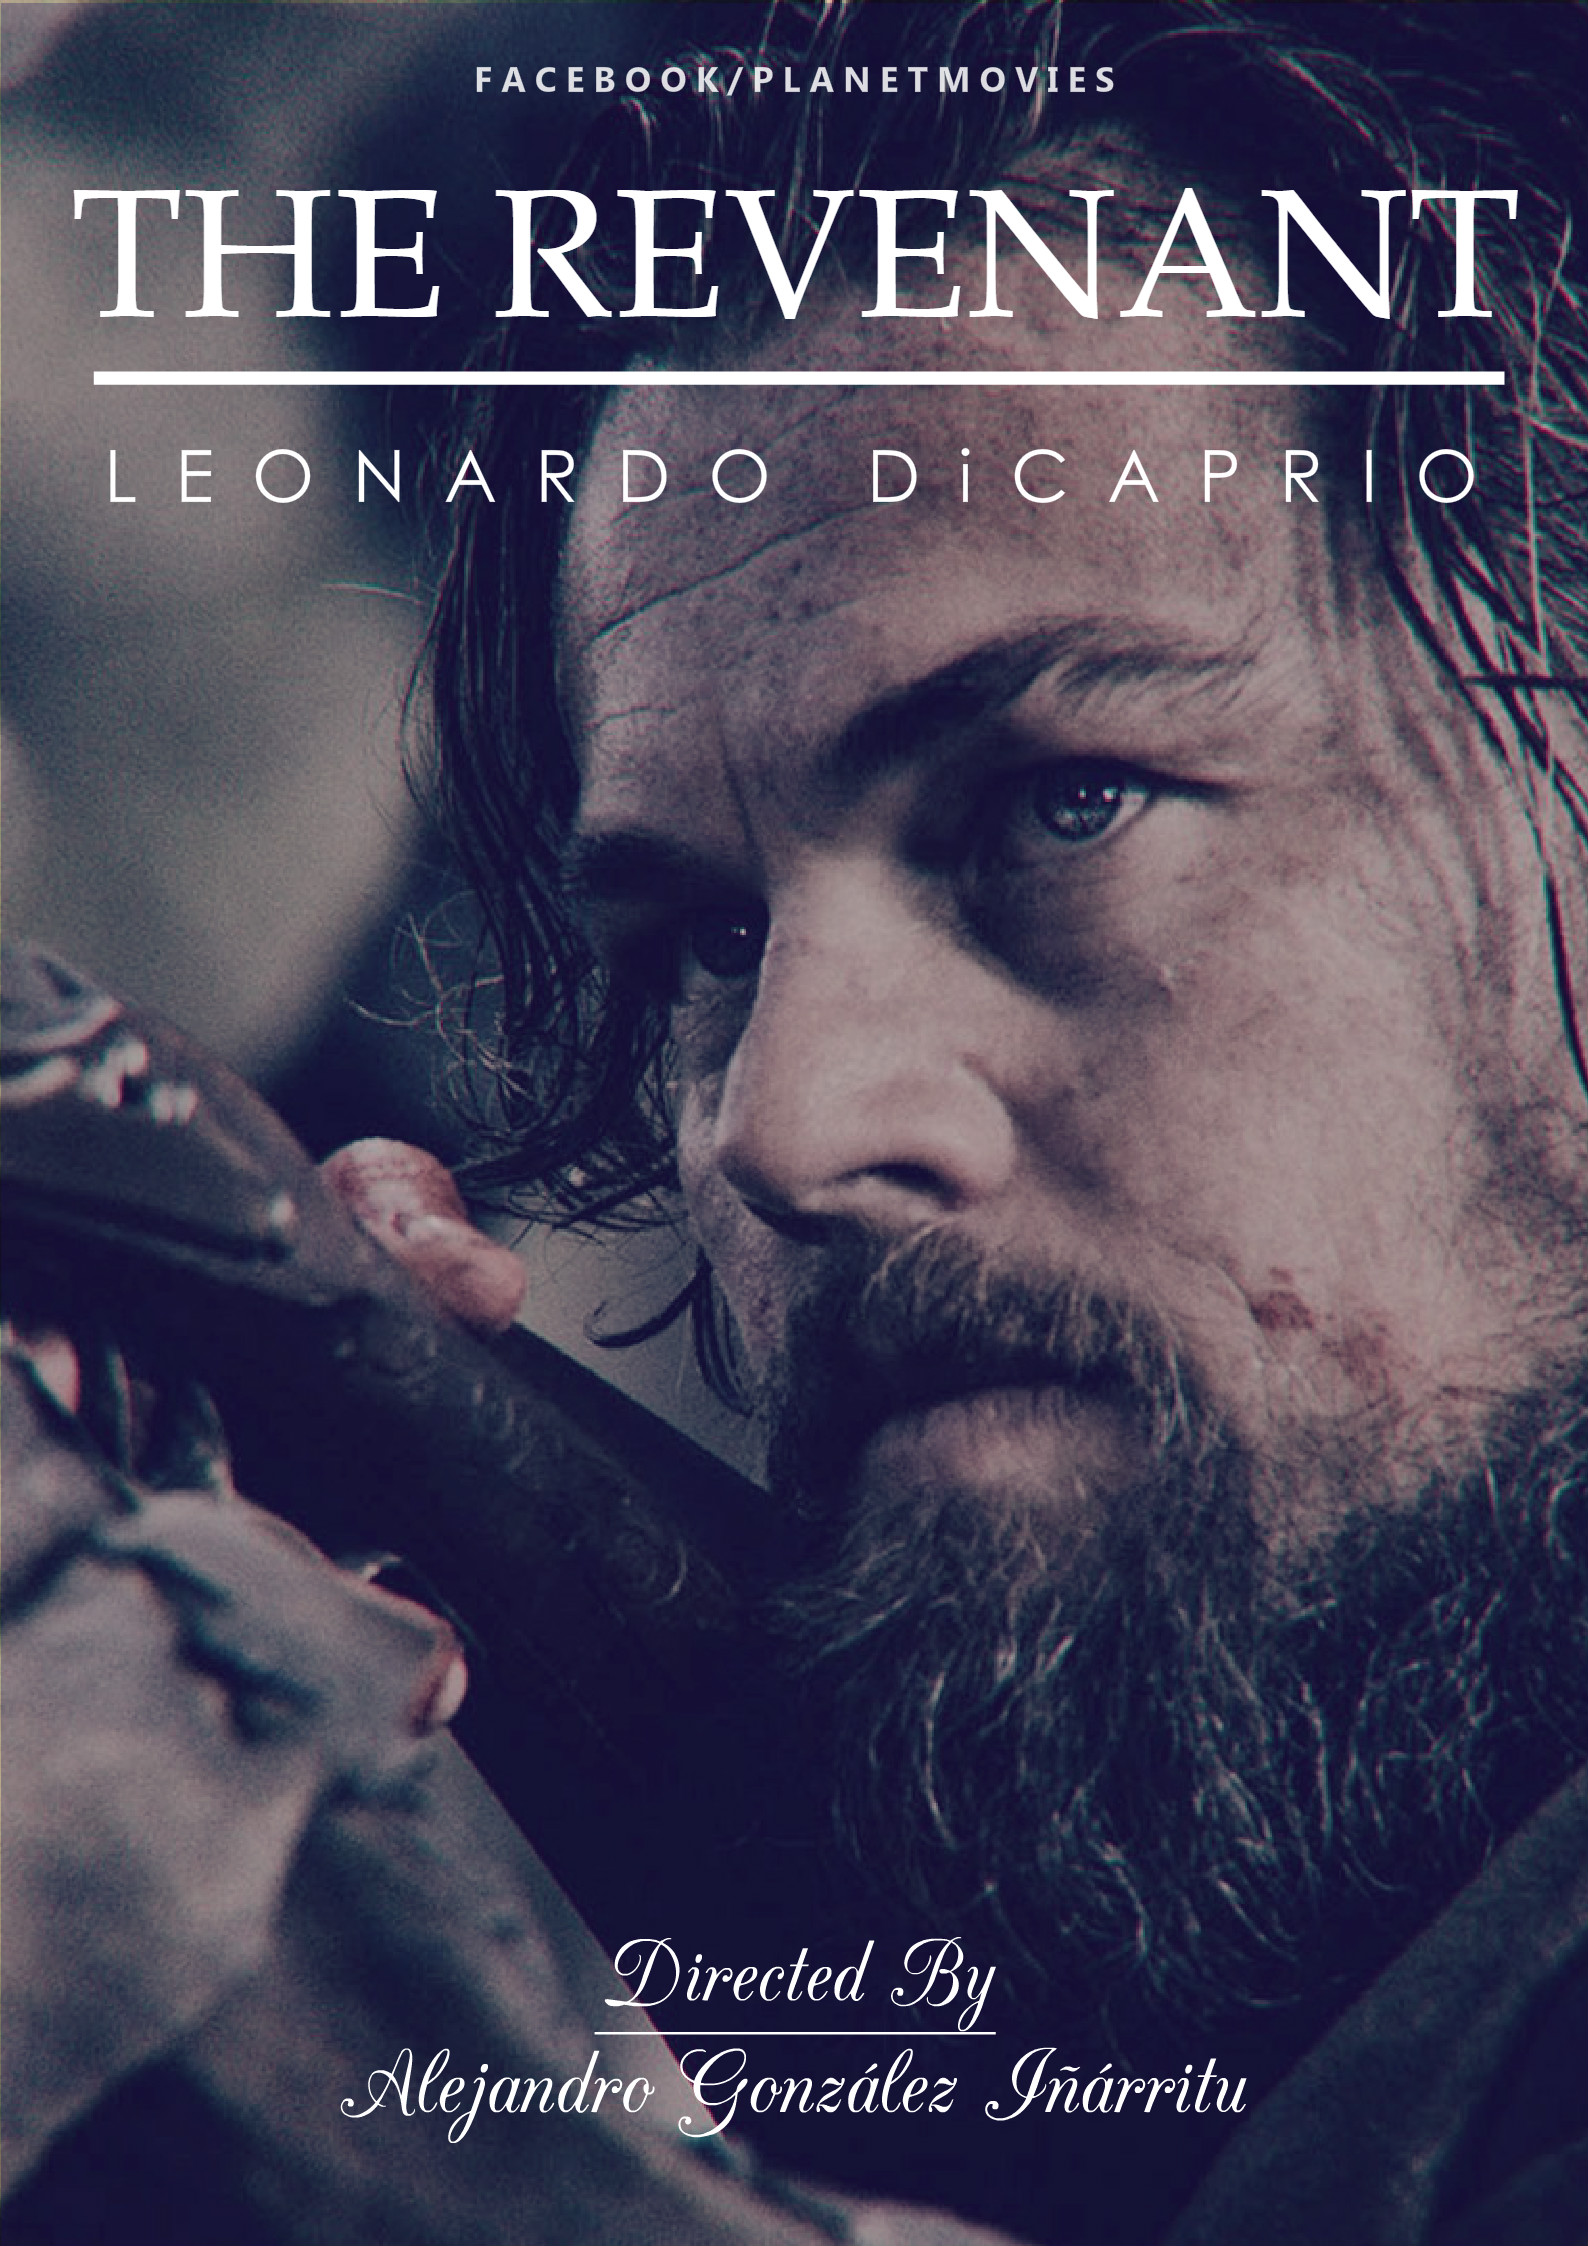 The revenant comes to theaters in limited release december 25 and wide